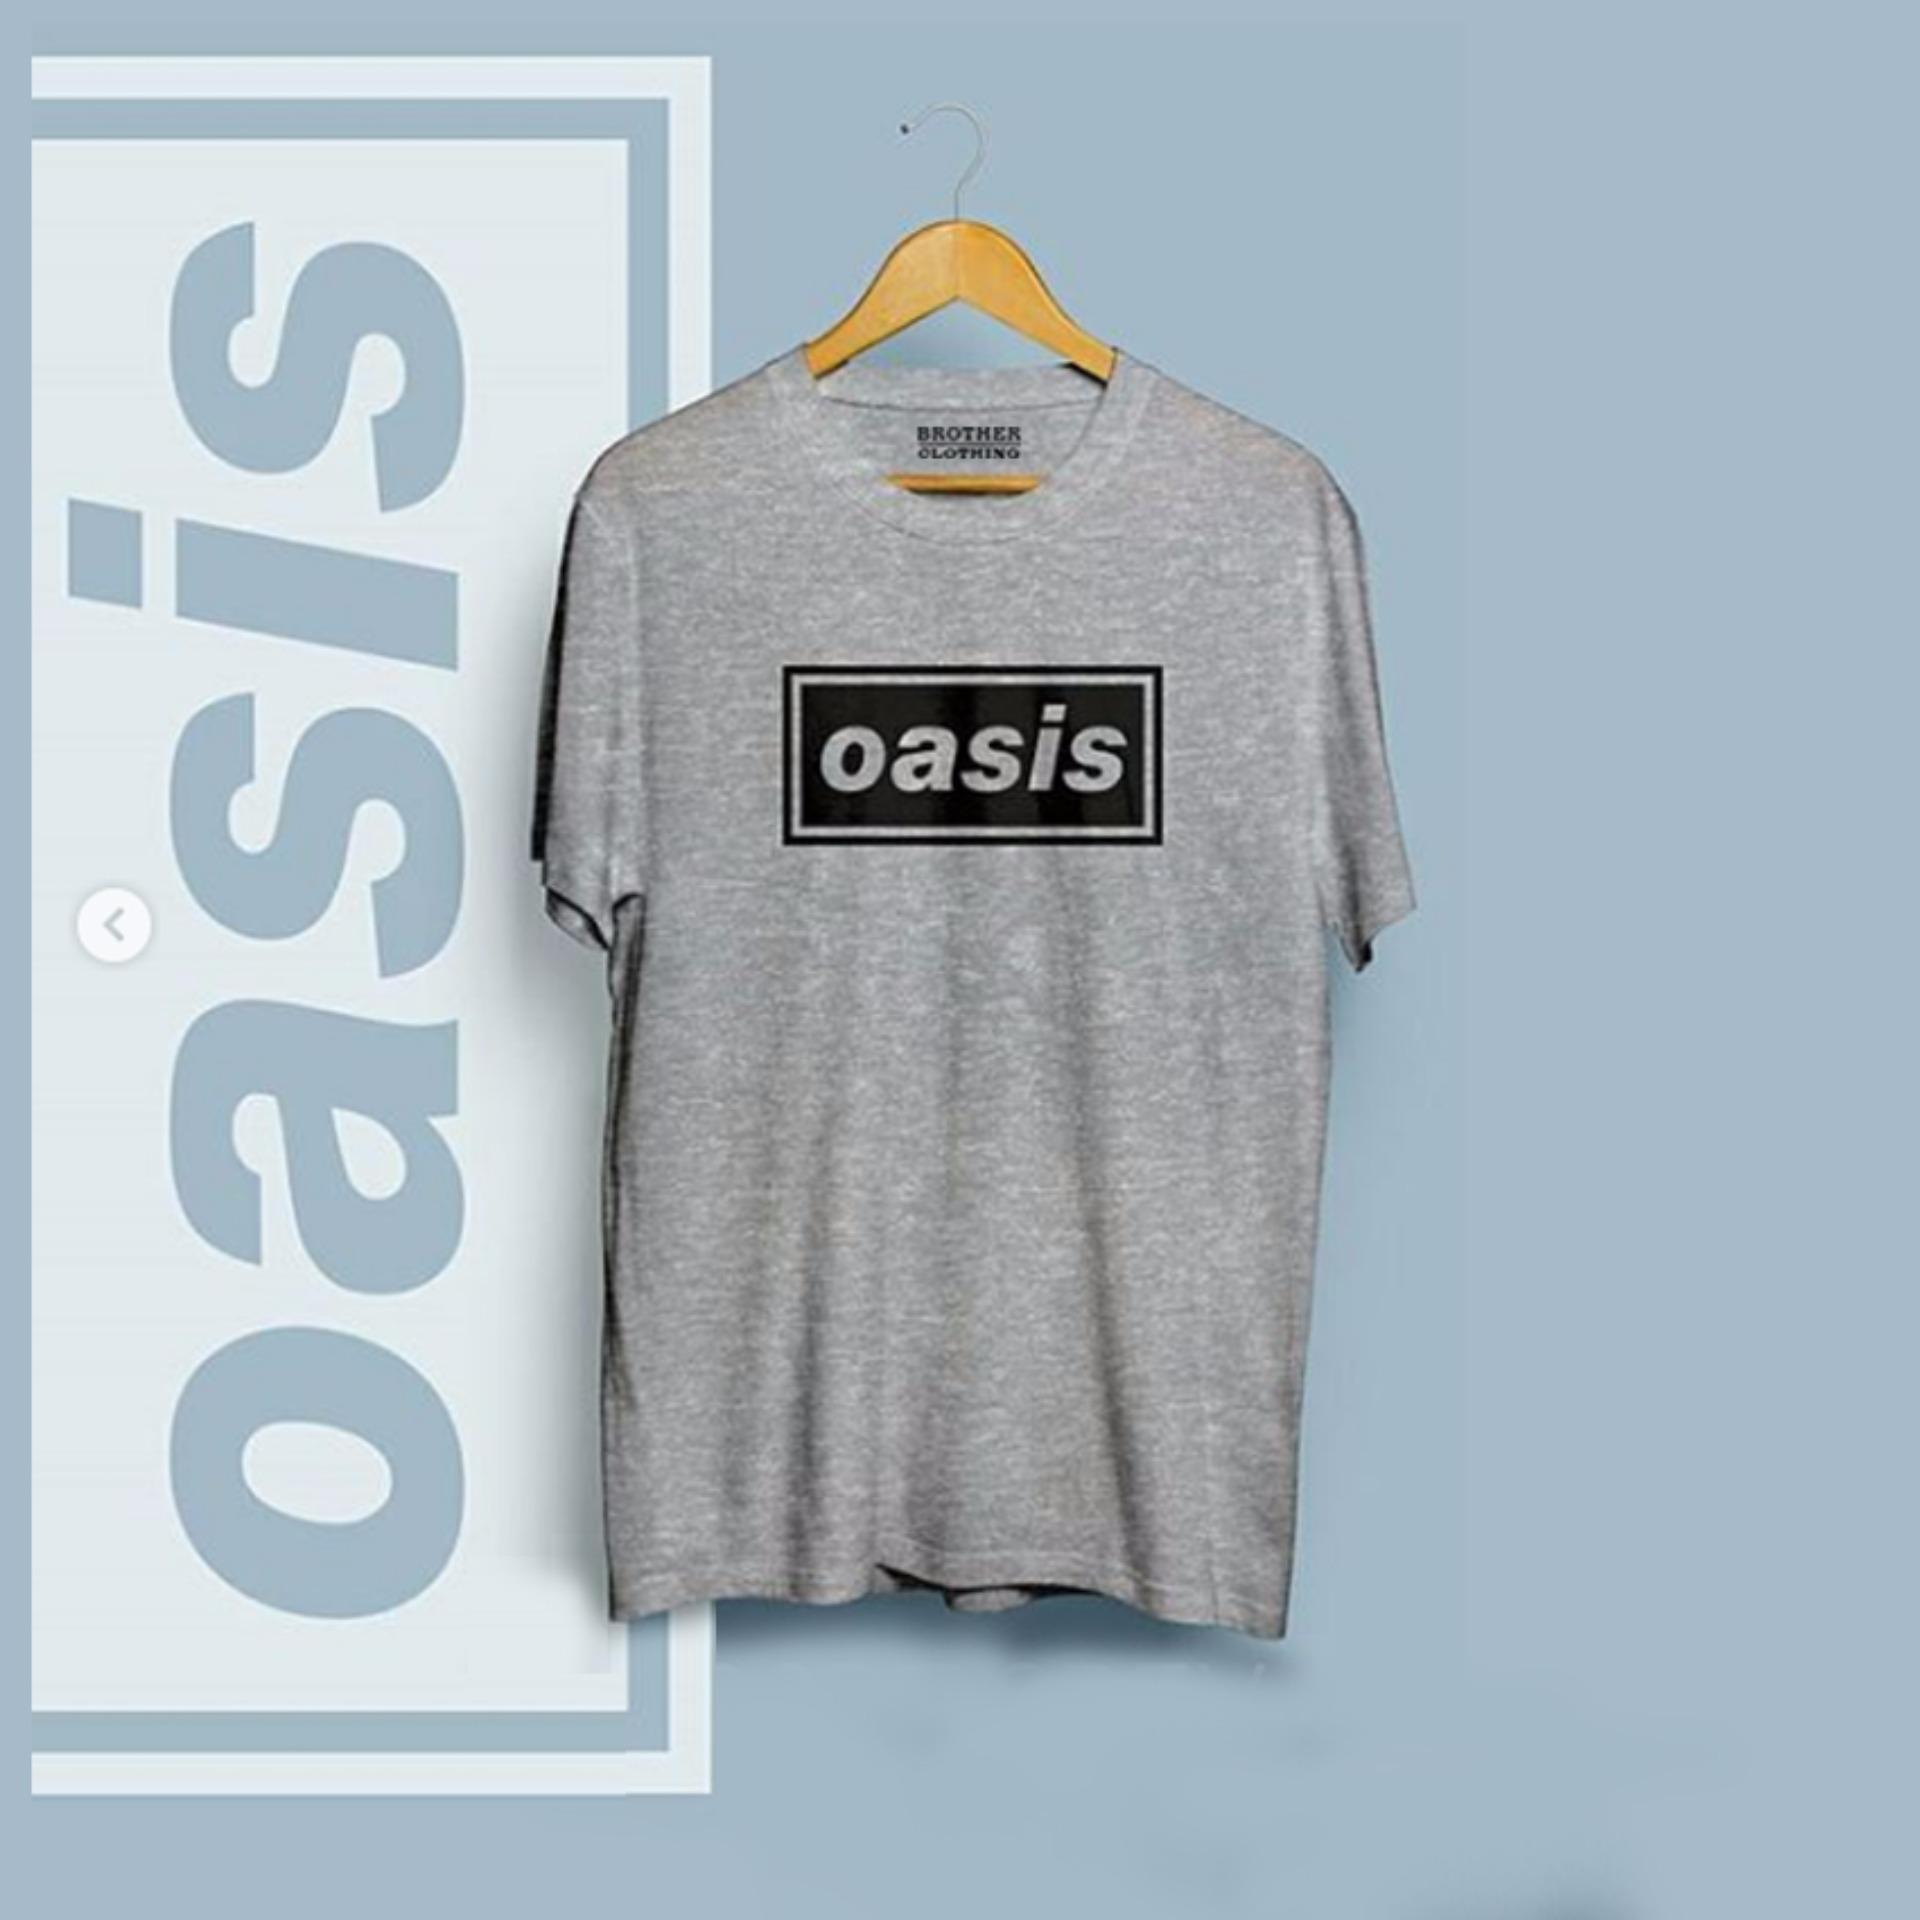 INC Tumblr Tee / T-Shirt / Kaos Wanita Stay Simple - Navy Do More Store Kaos Distro Band Musik - OASIS Black Premium